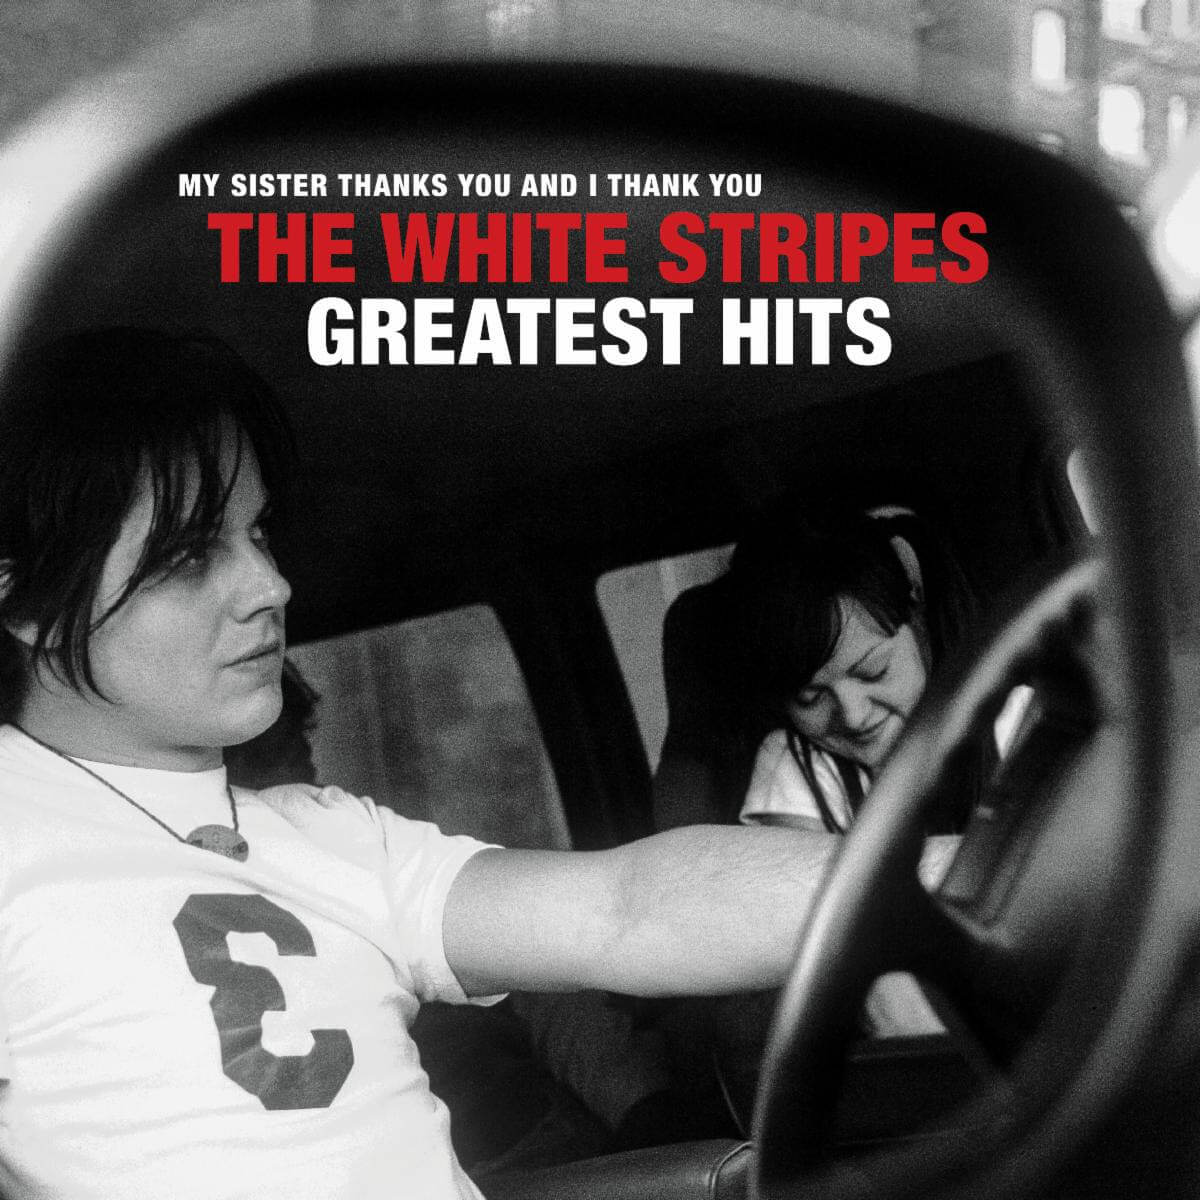 The White Stripes Greatest Hits album review by Leslie Chu. The duo's 26 song anthology comes out on December 4th, via Third Man/Columbia